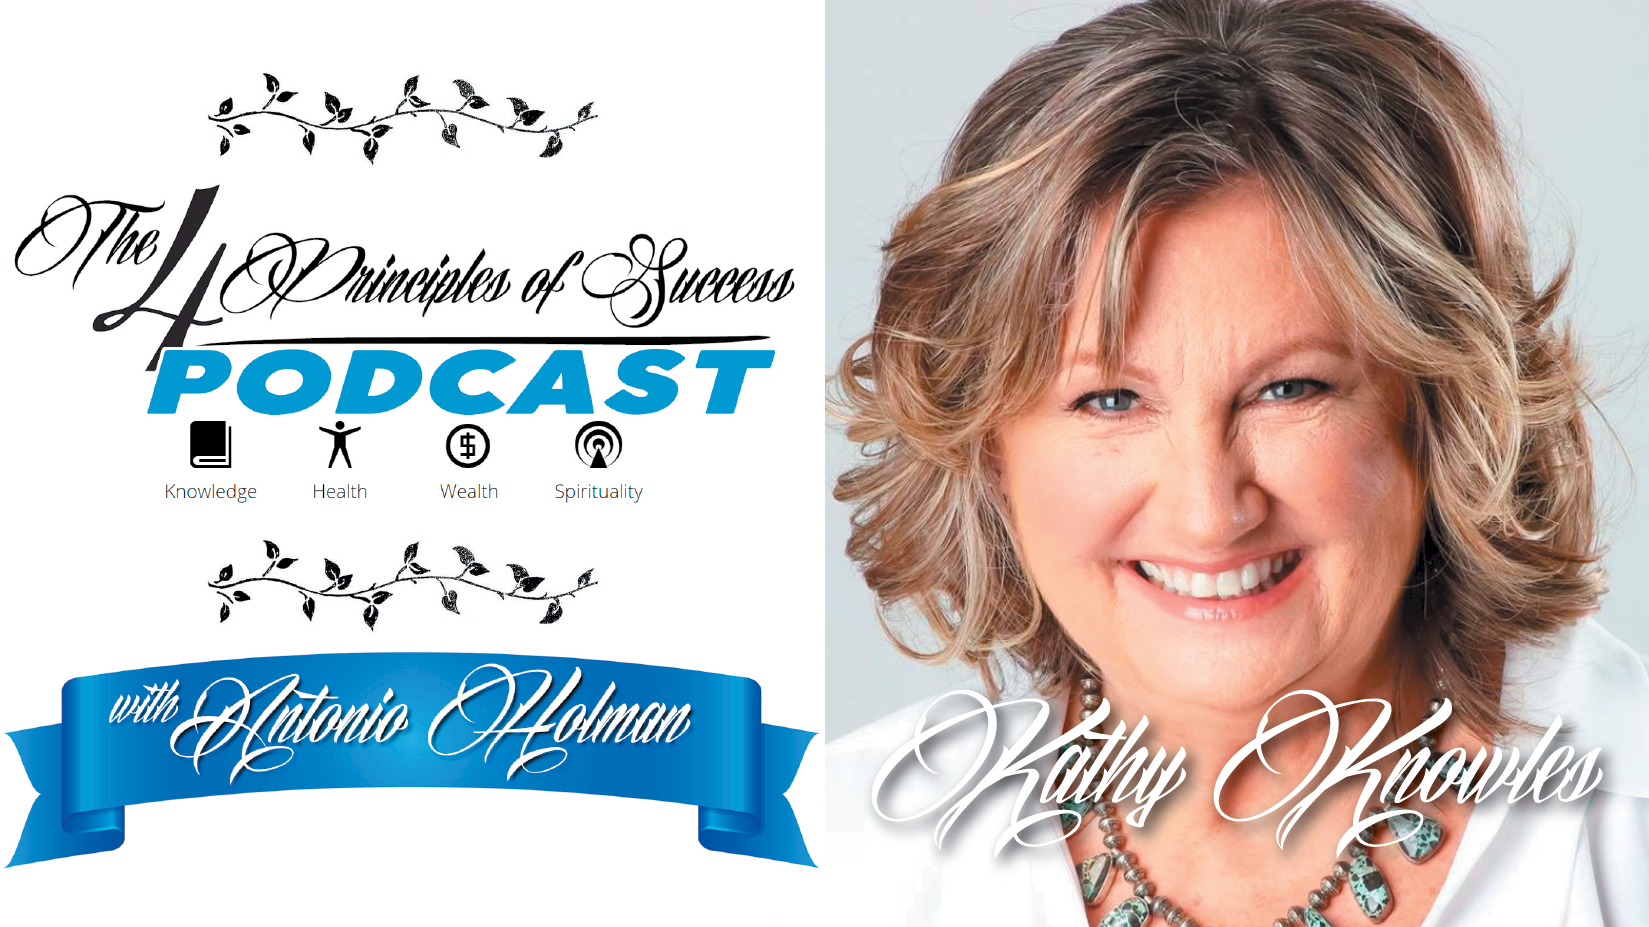 The 4 Principles of Success guest Kathy Knowles